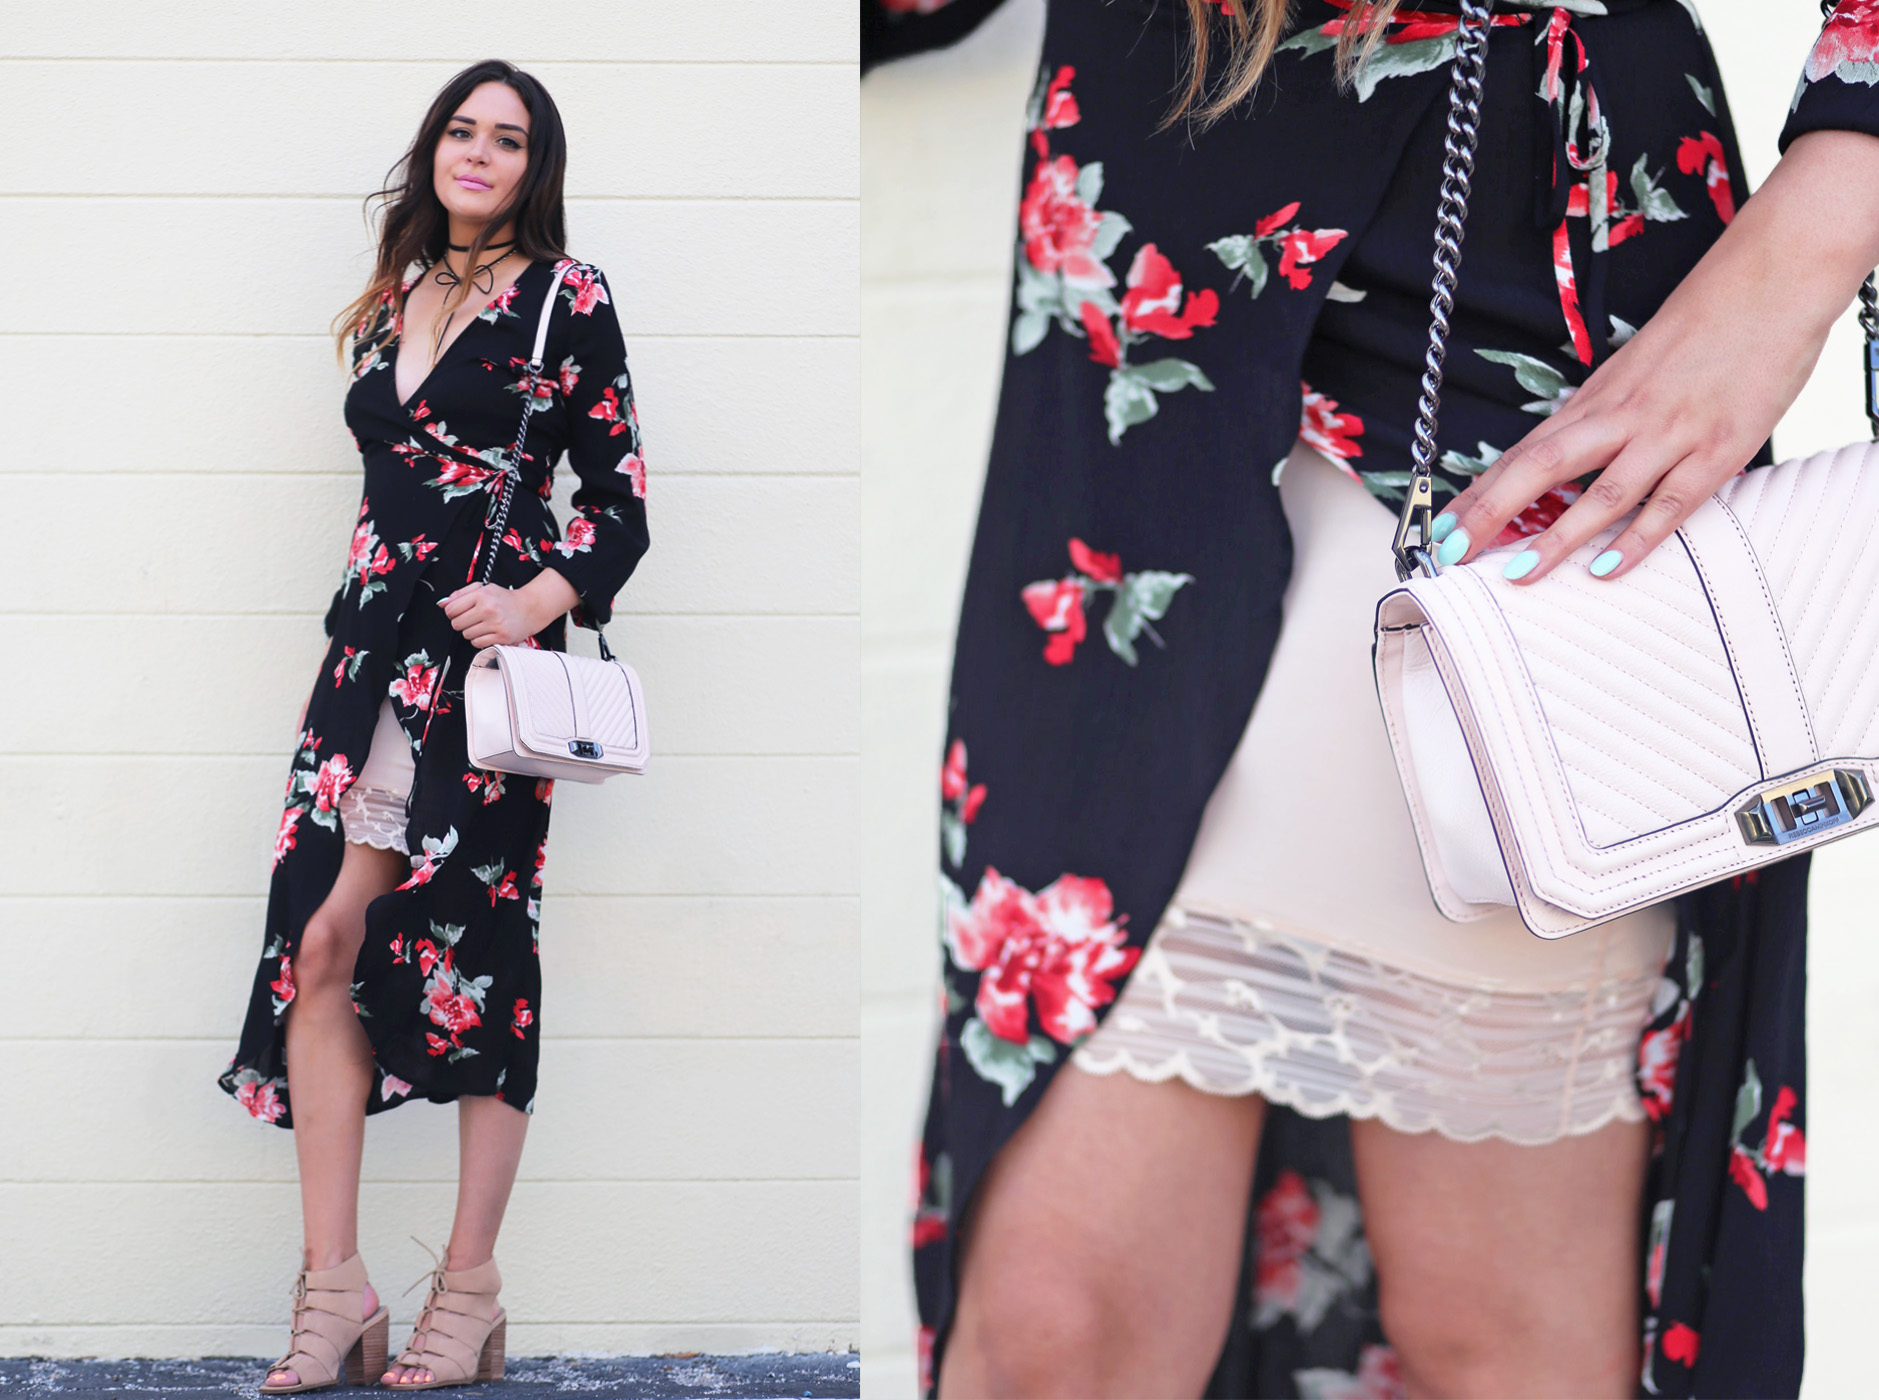 Lace dress up outfit | Mash elle blogger | lace | lacey outfit | white lace | summer outfit Mash elle lace bralette | lace floral wrap dress